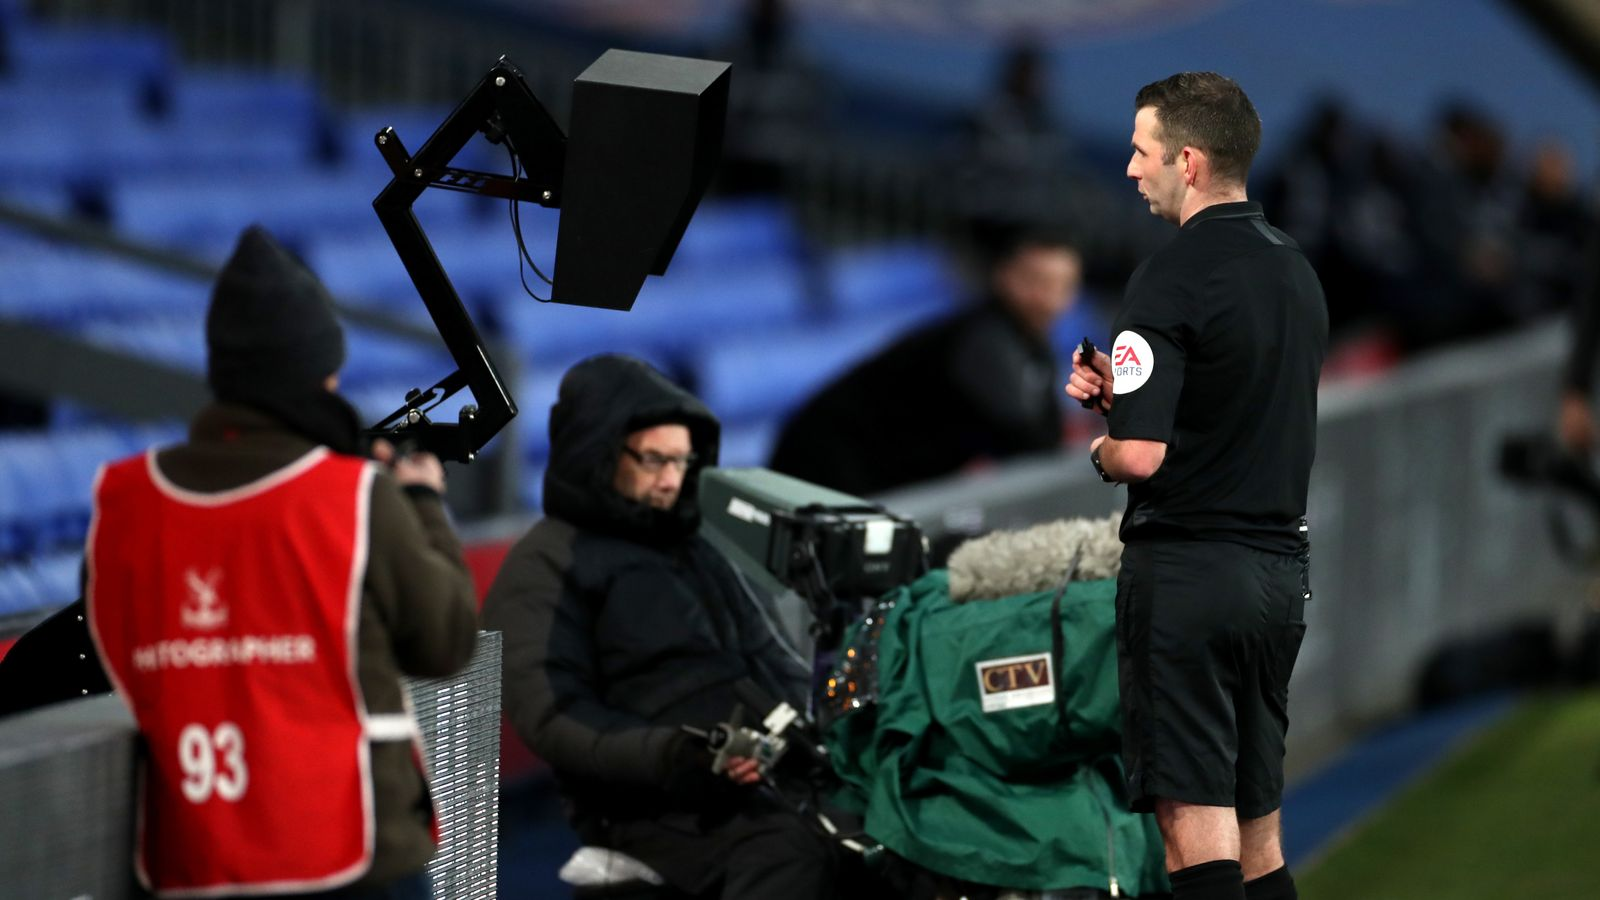 Referees told to use pitchside monitors for red cards